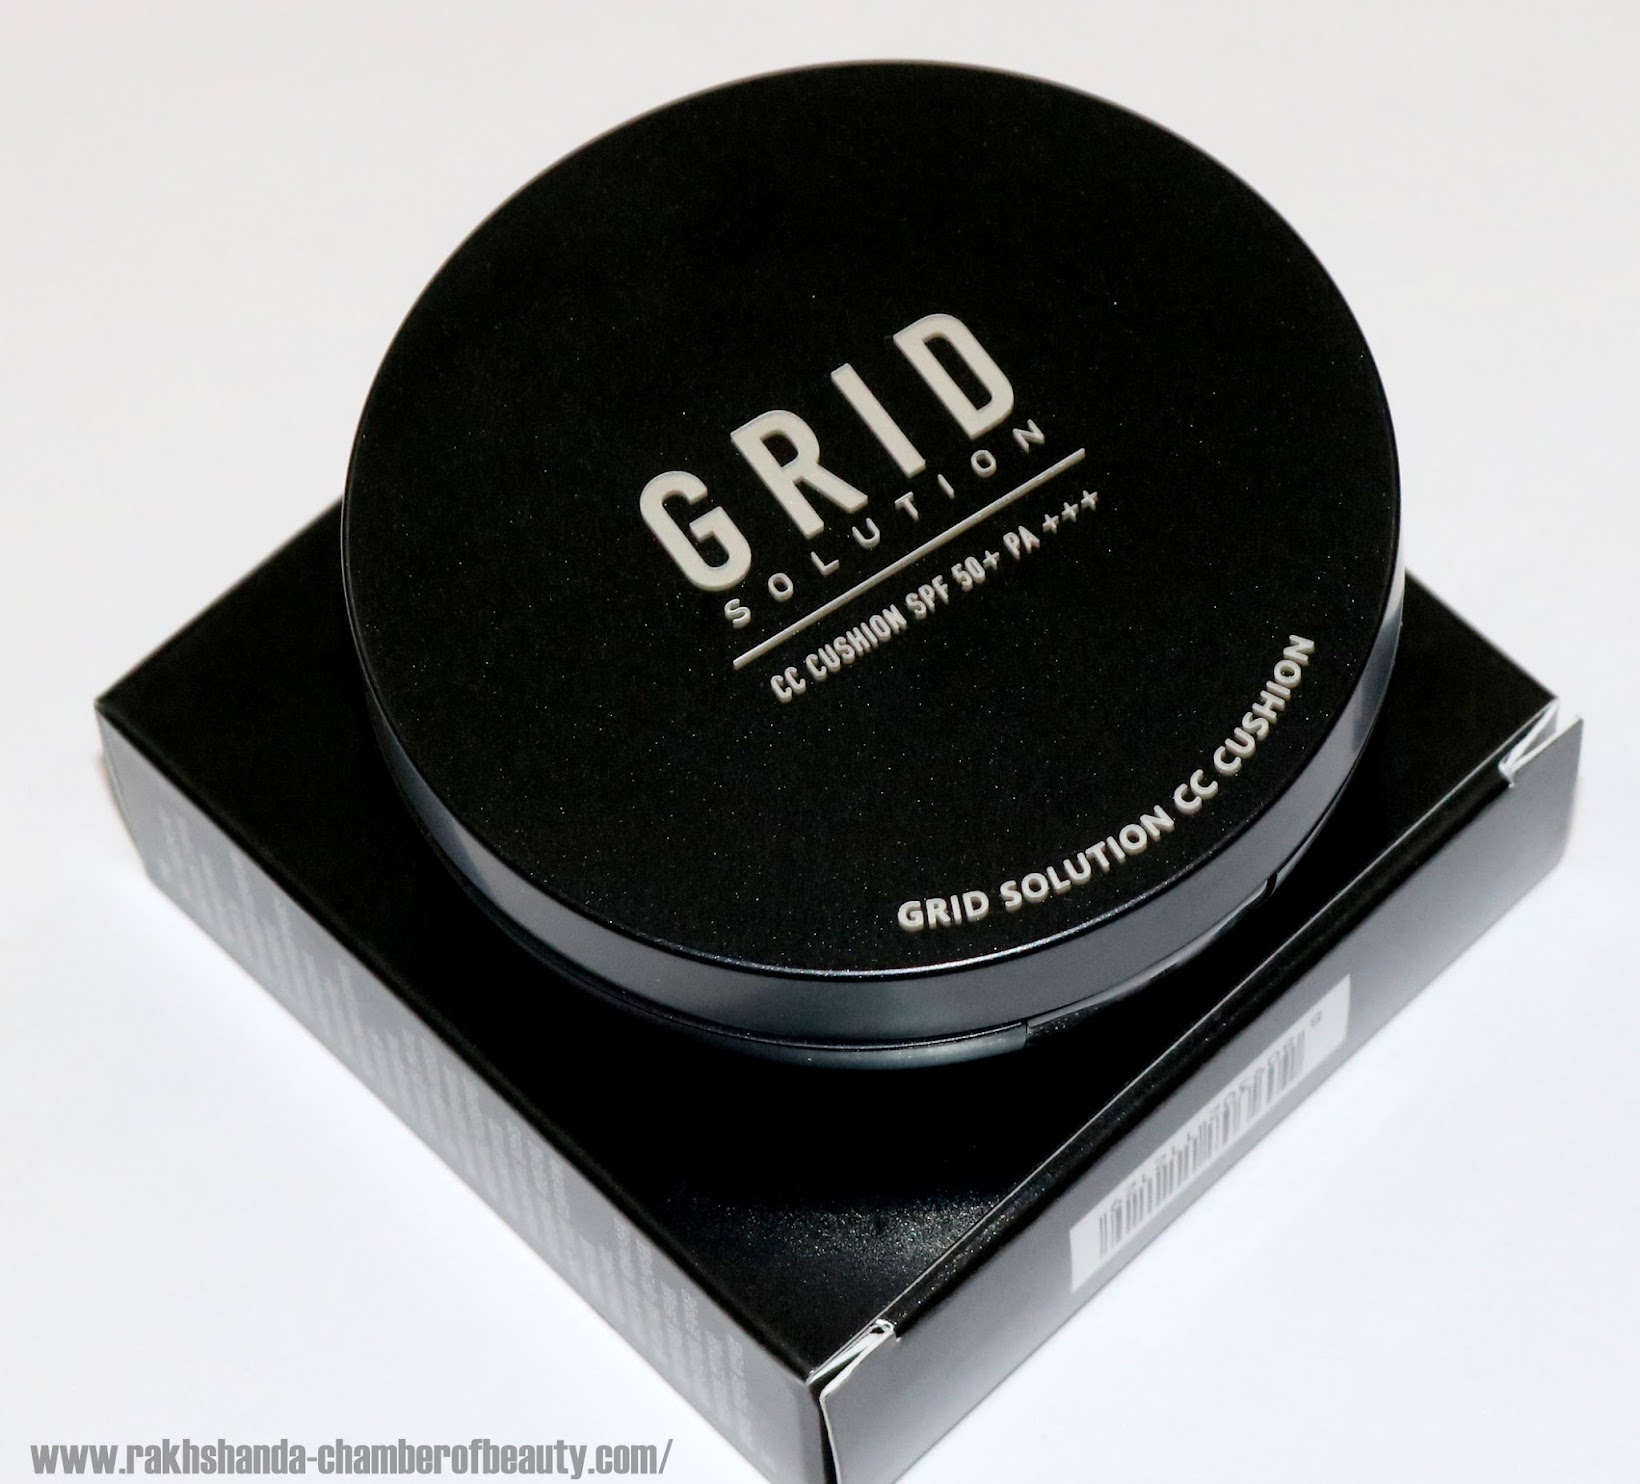 Grid Solution UK CC Cushion Foundation SPF50++/PA+++ - Review & Swatches